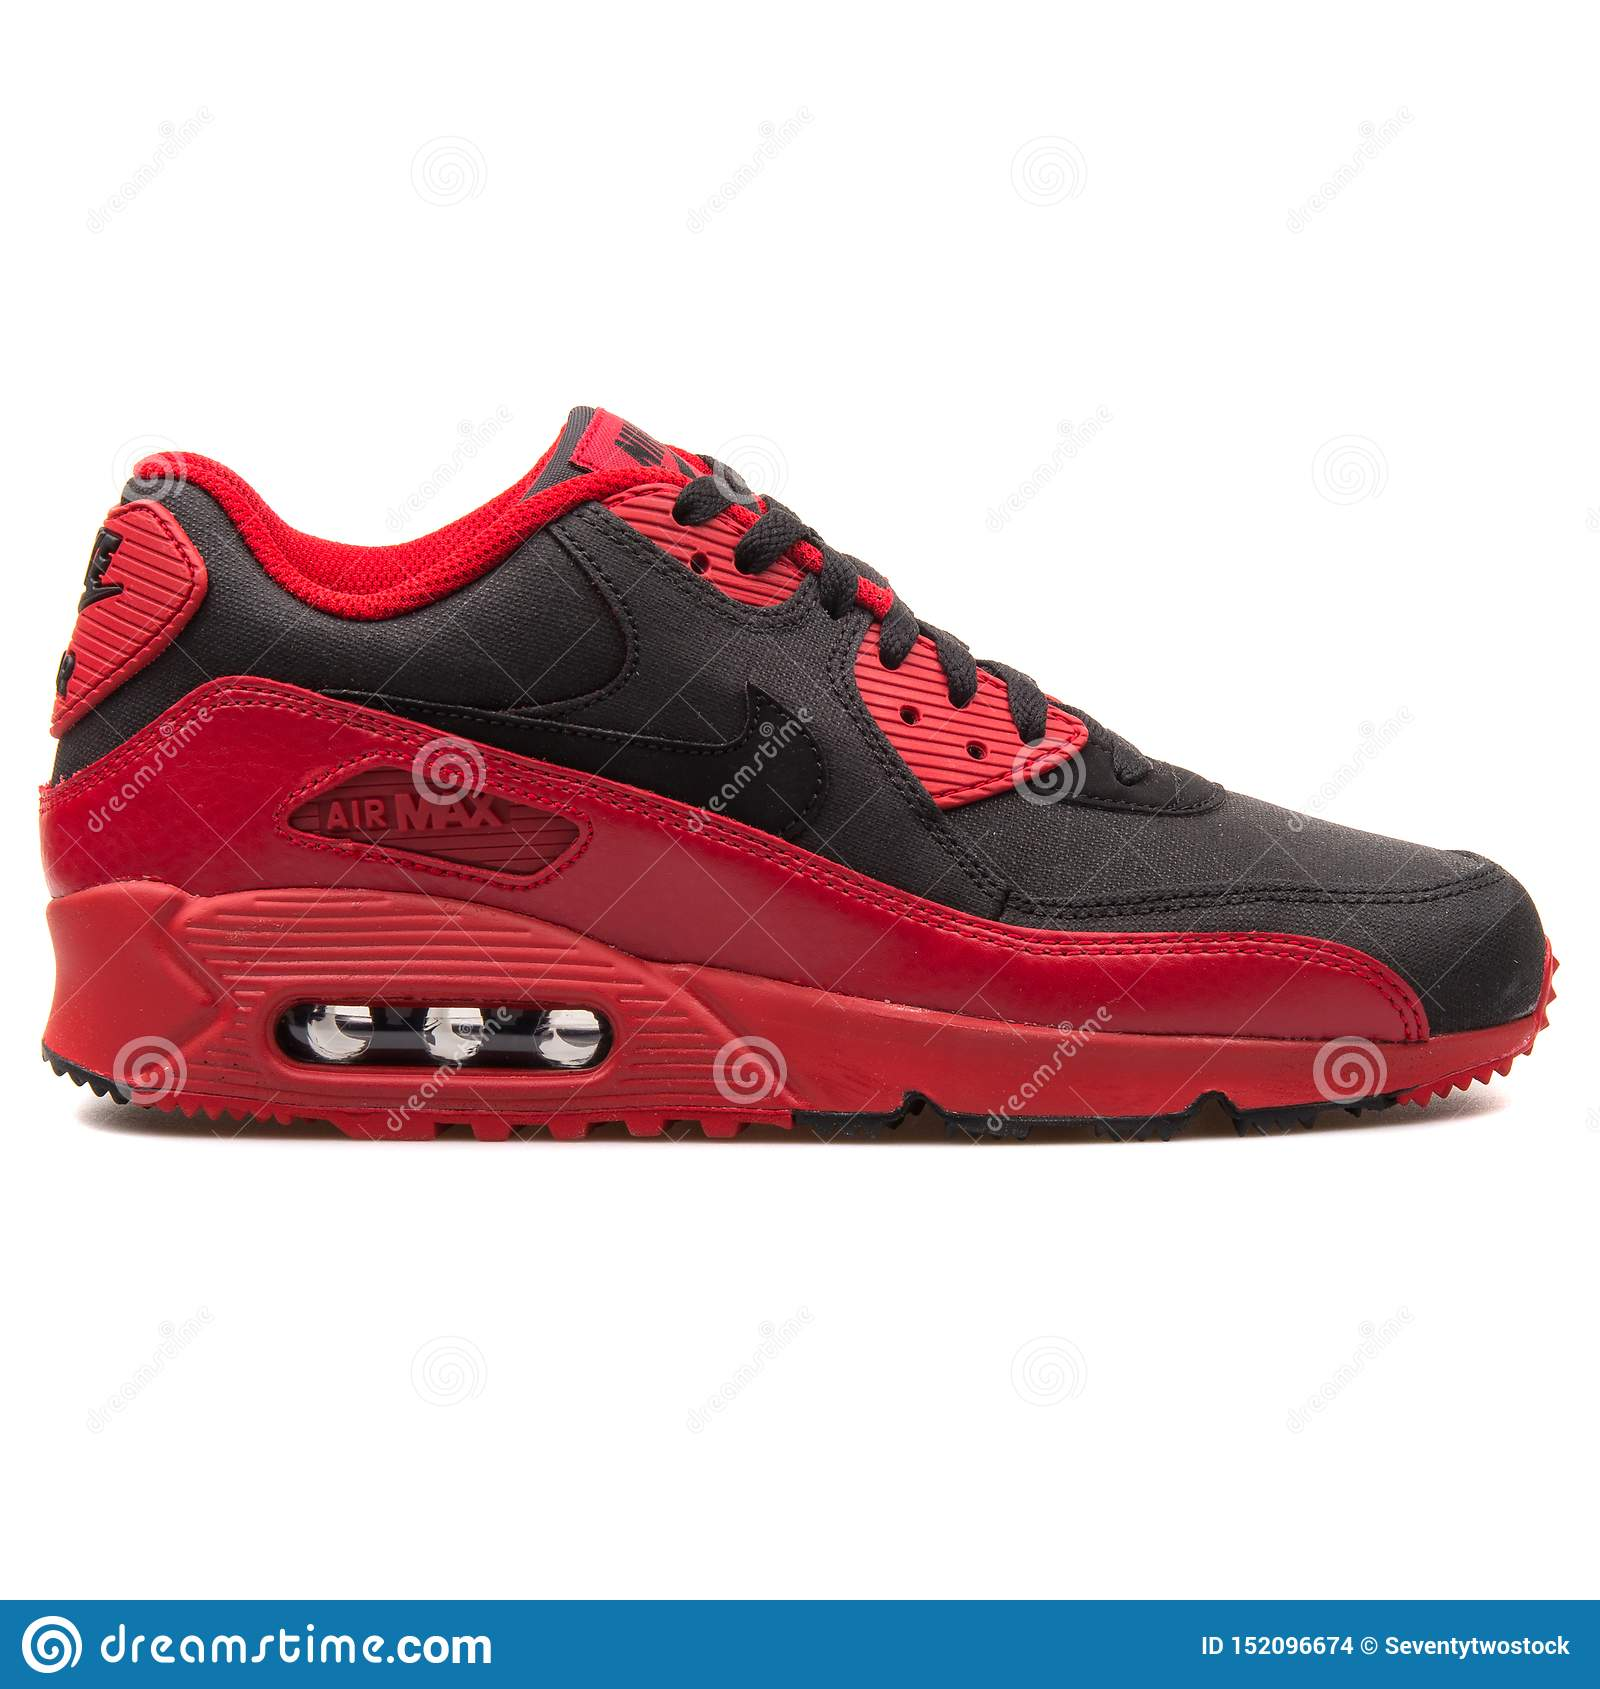 wholesale dealer c2c9c 615c0 Nike Air Max 90 Winter Premium Red And Black Sneaker ...